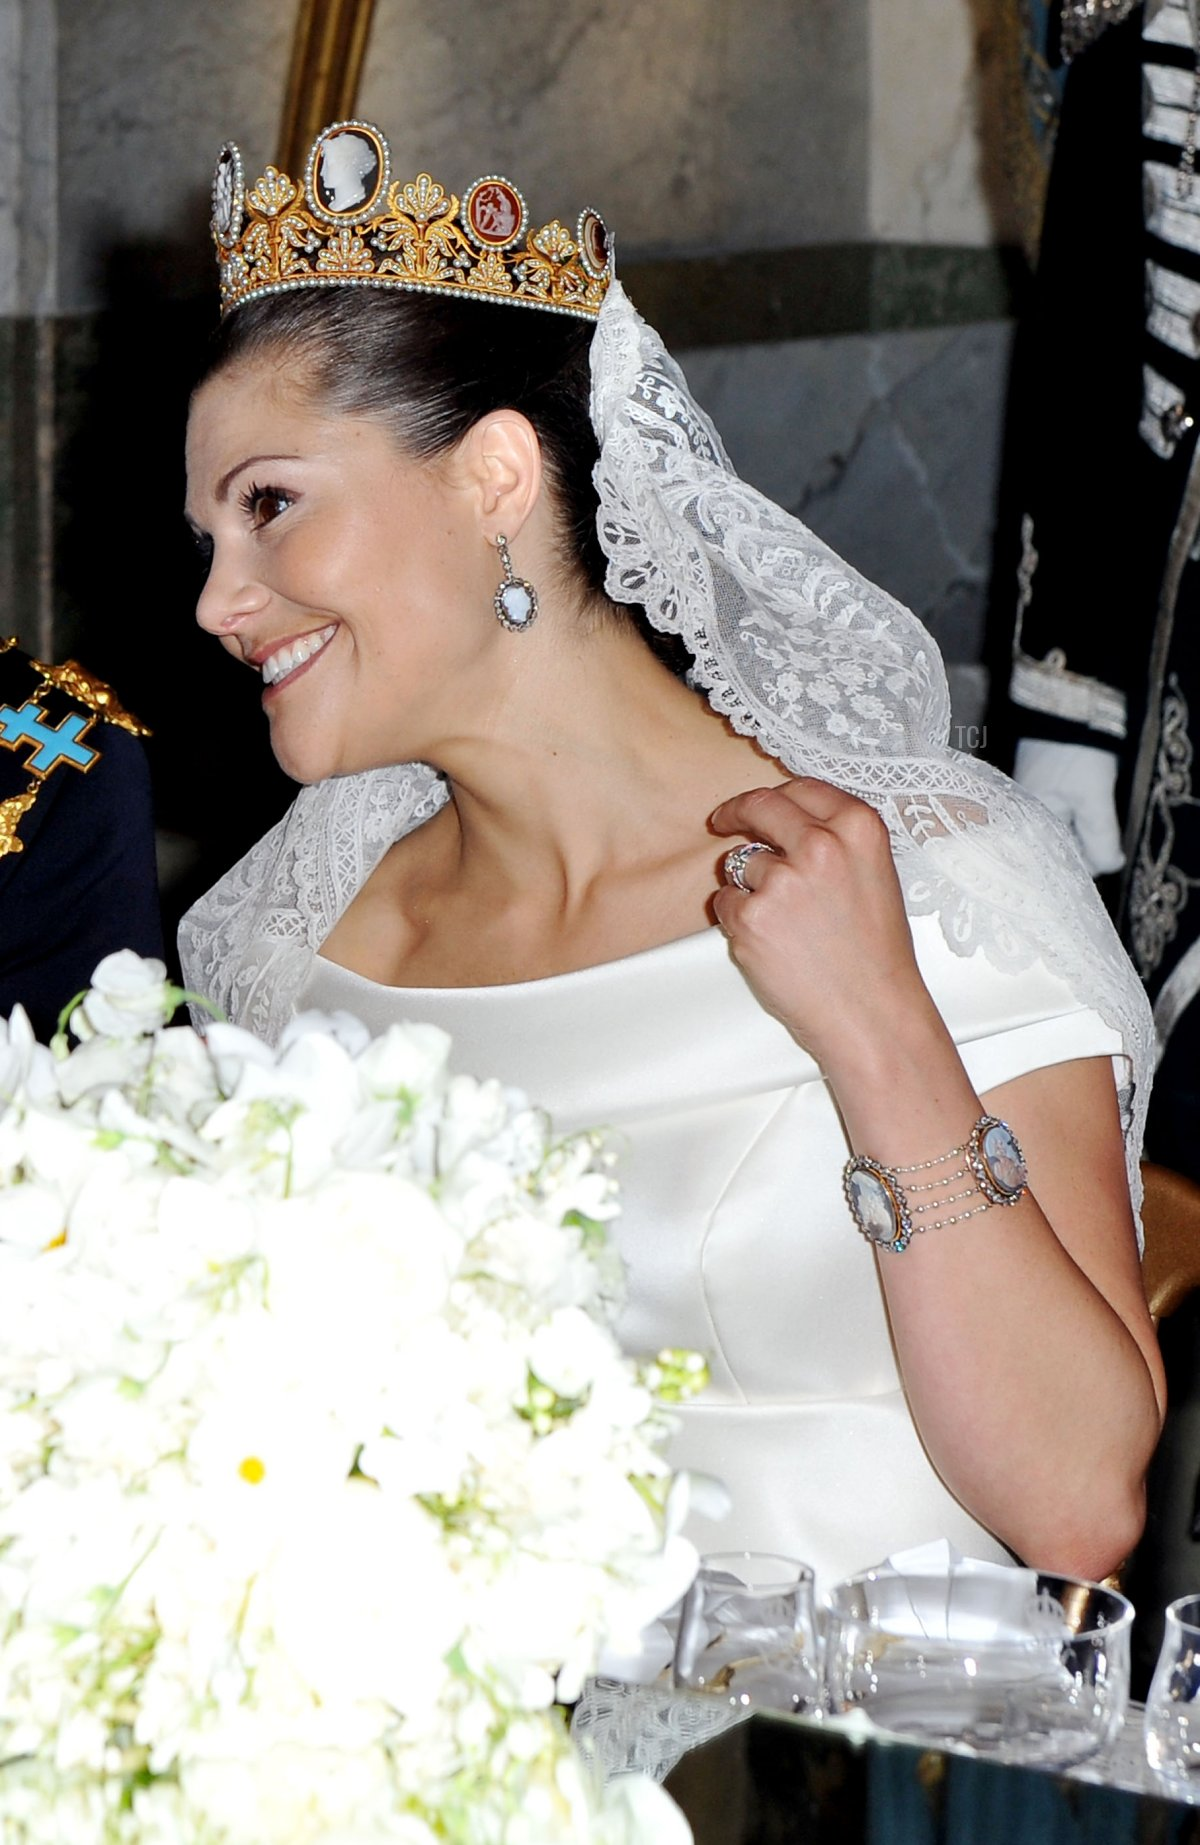 Crown Princess Victoria of Sweden, her father King Carl Gustaf of Sweden and Ewa Westling attend their wedding banquet at the Royal Palace on June 19, 2010 in Stockholm, Sweden